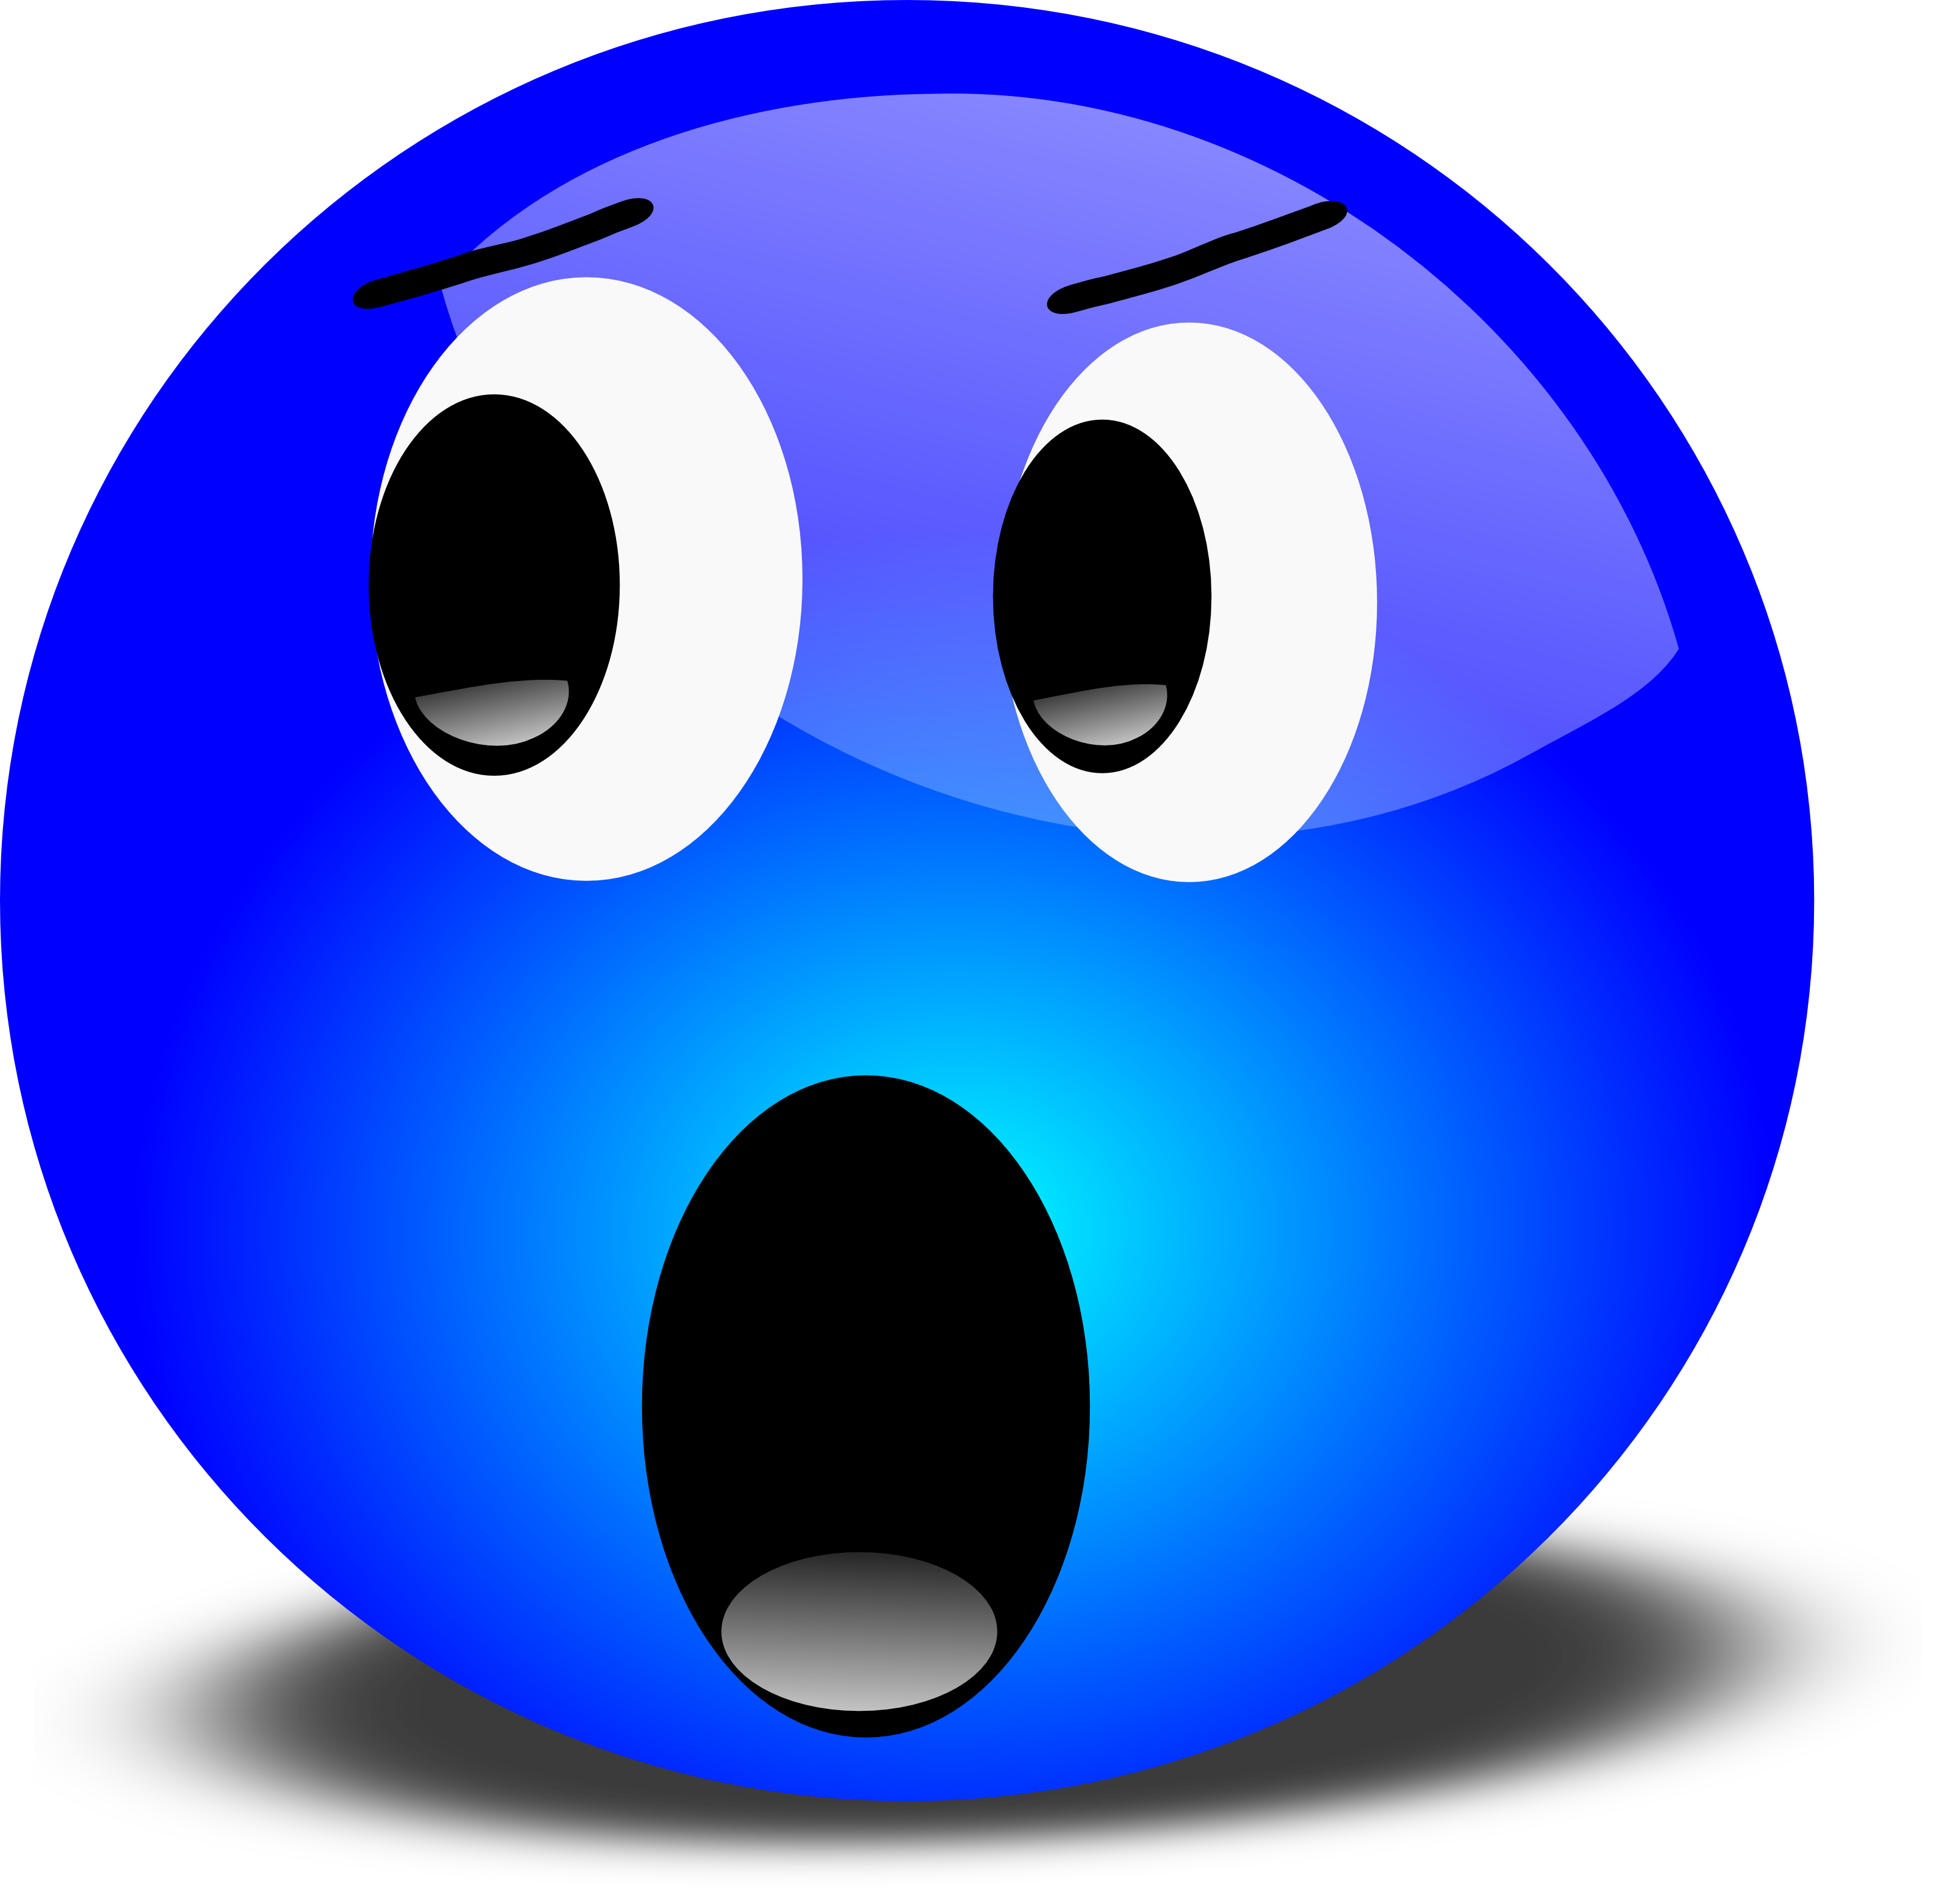 Yell clipart screaming. Yelling png free transparent